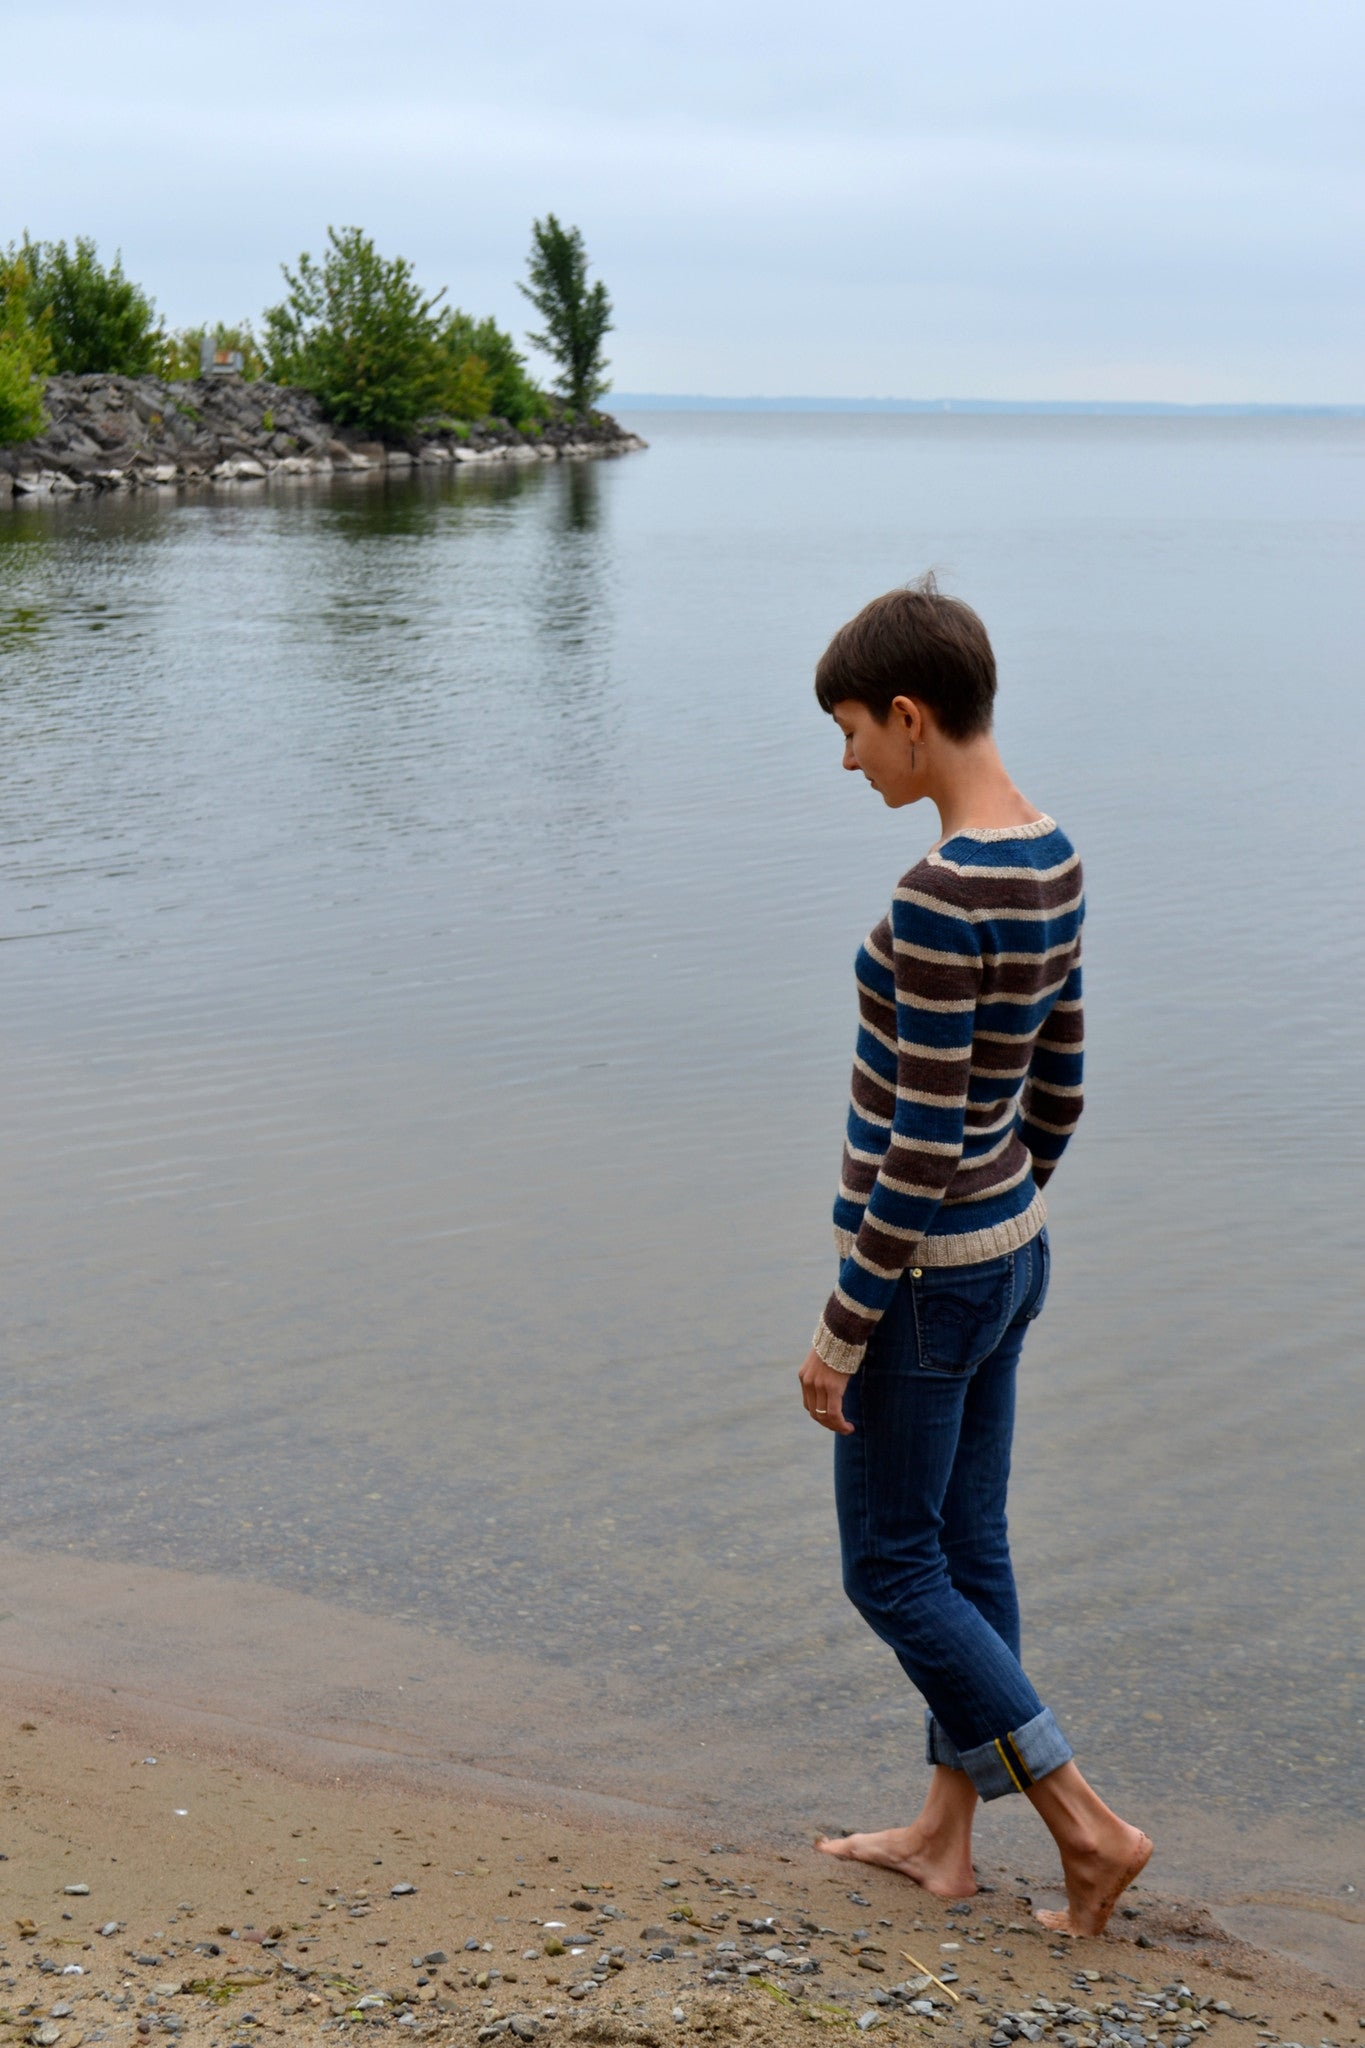 Stillness knitting pattern worn with jeans on the beach